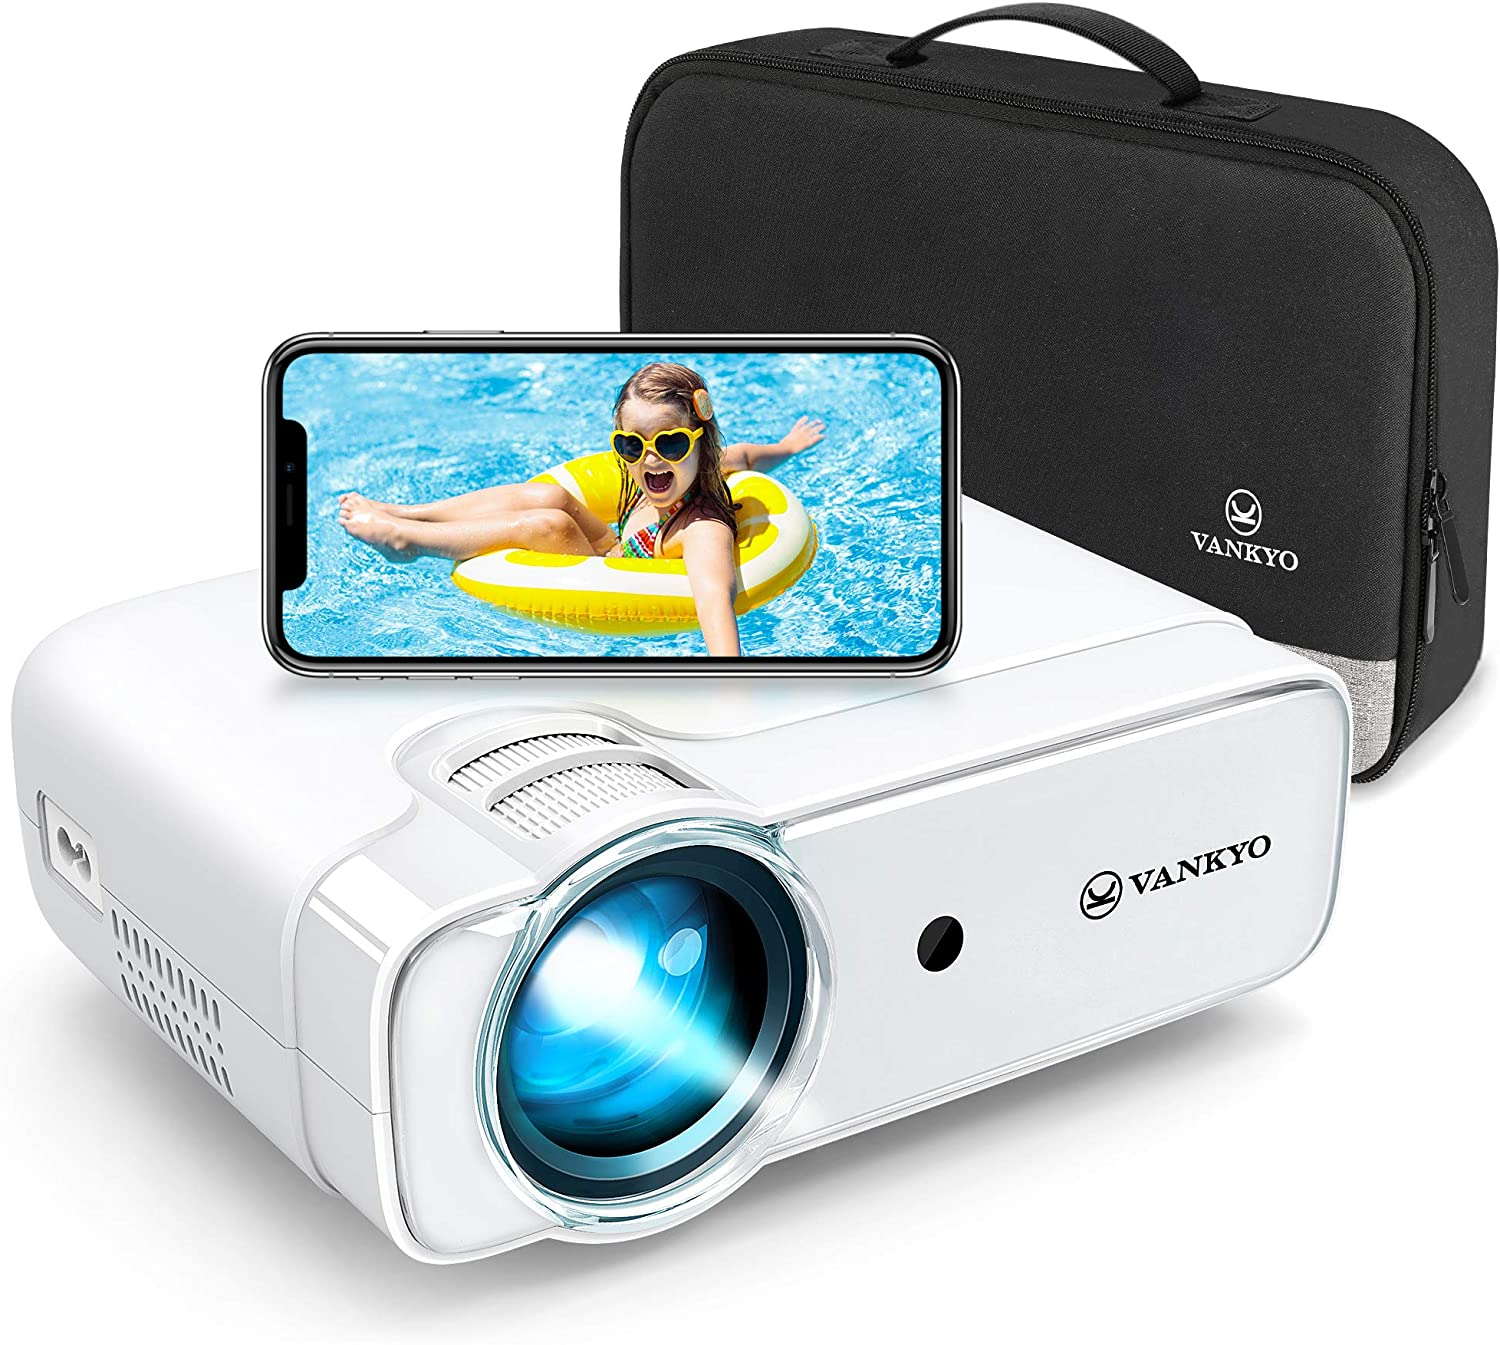 VANKYO Leisure 430 Projector 5000 Lumens 236 inches 1080p